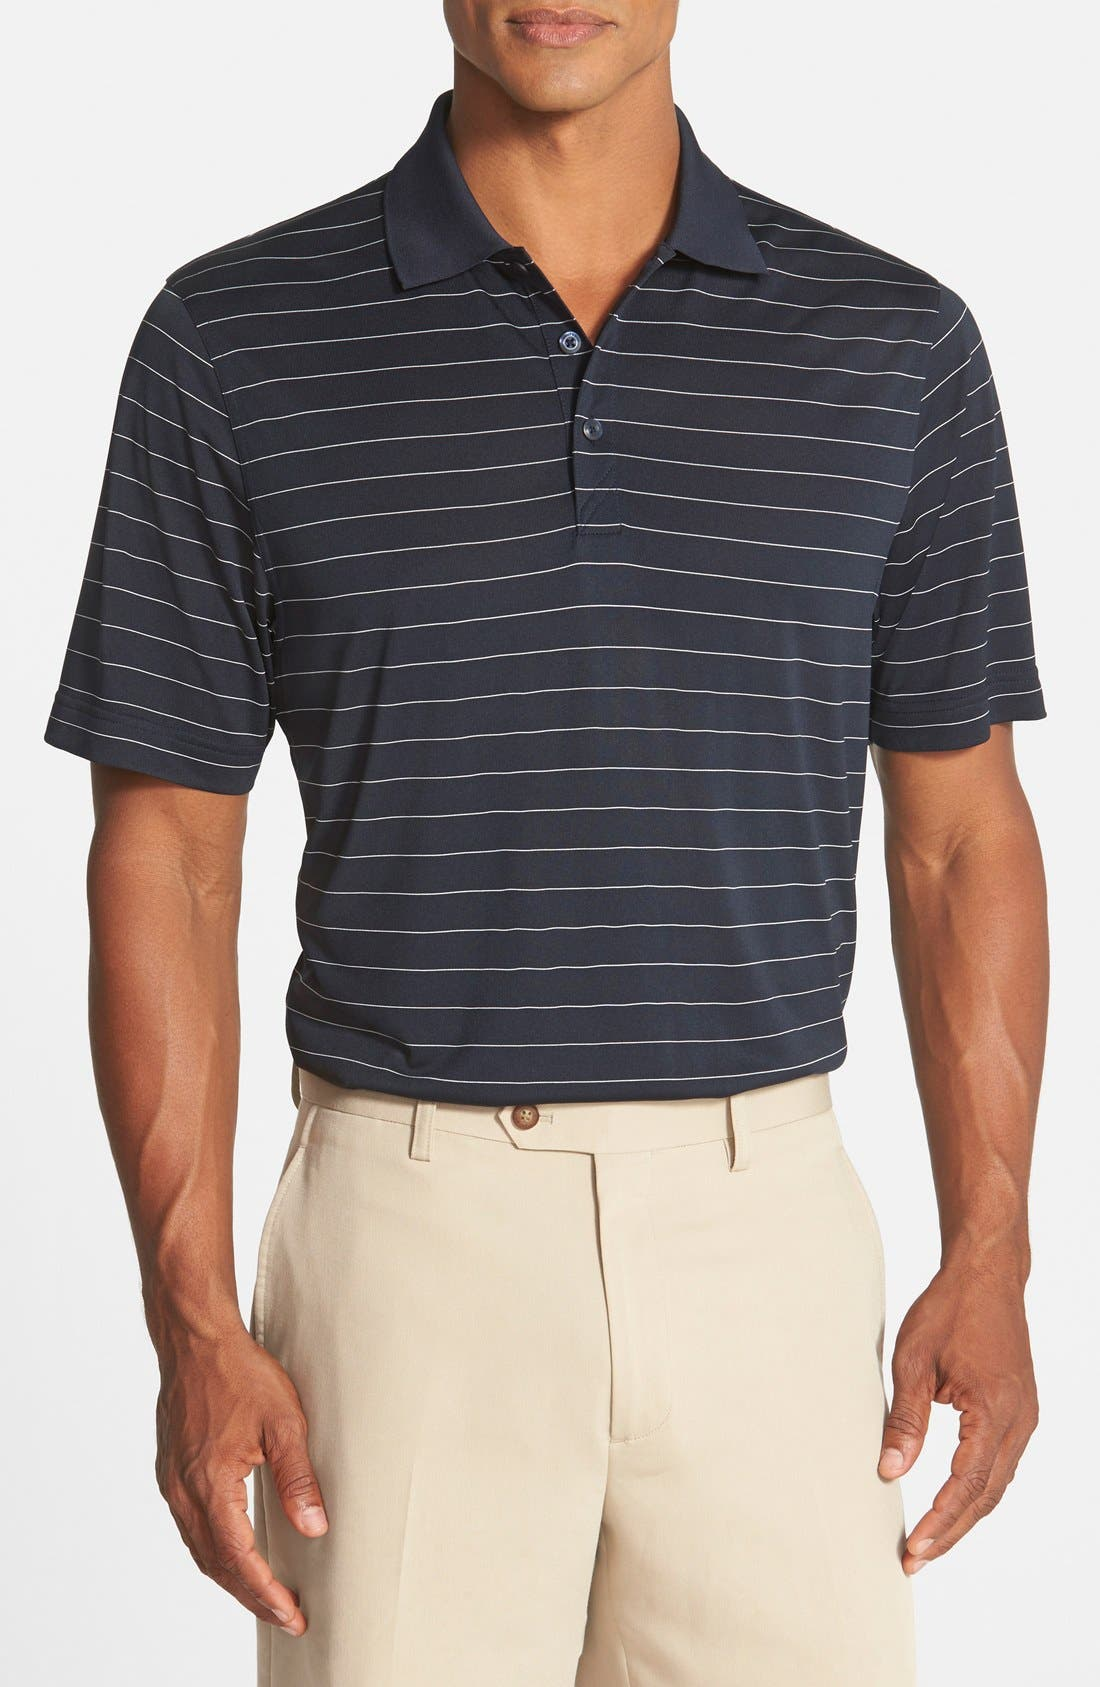 Franklin DryTec Polo,                             Main thumbnail 1, color,                             NAVY BLUE/ WHITE